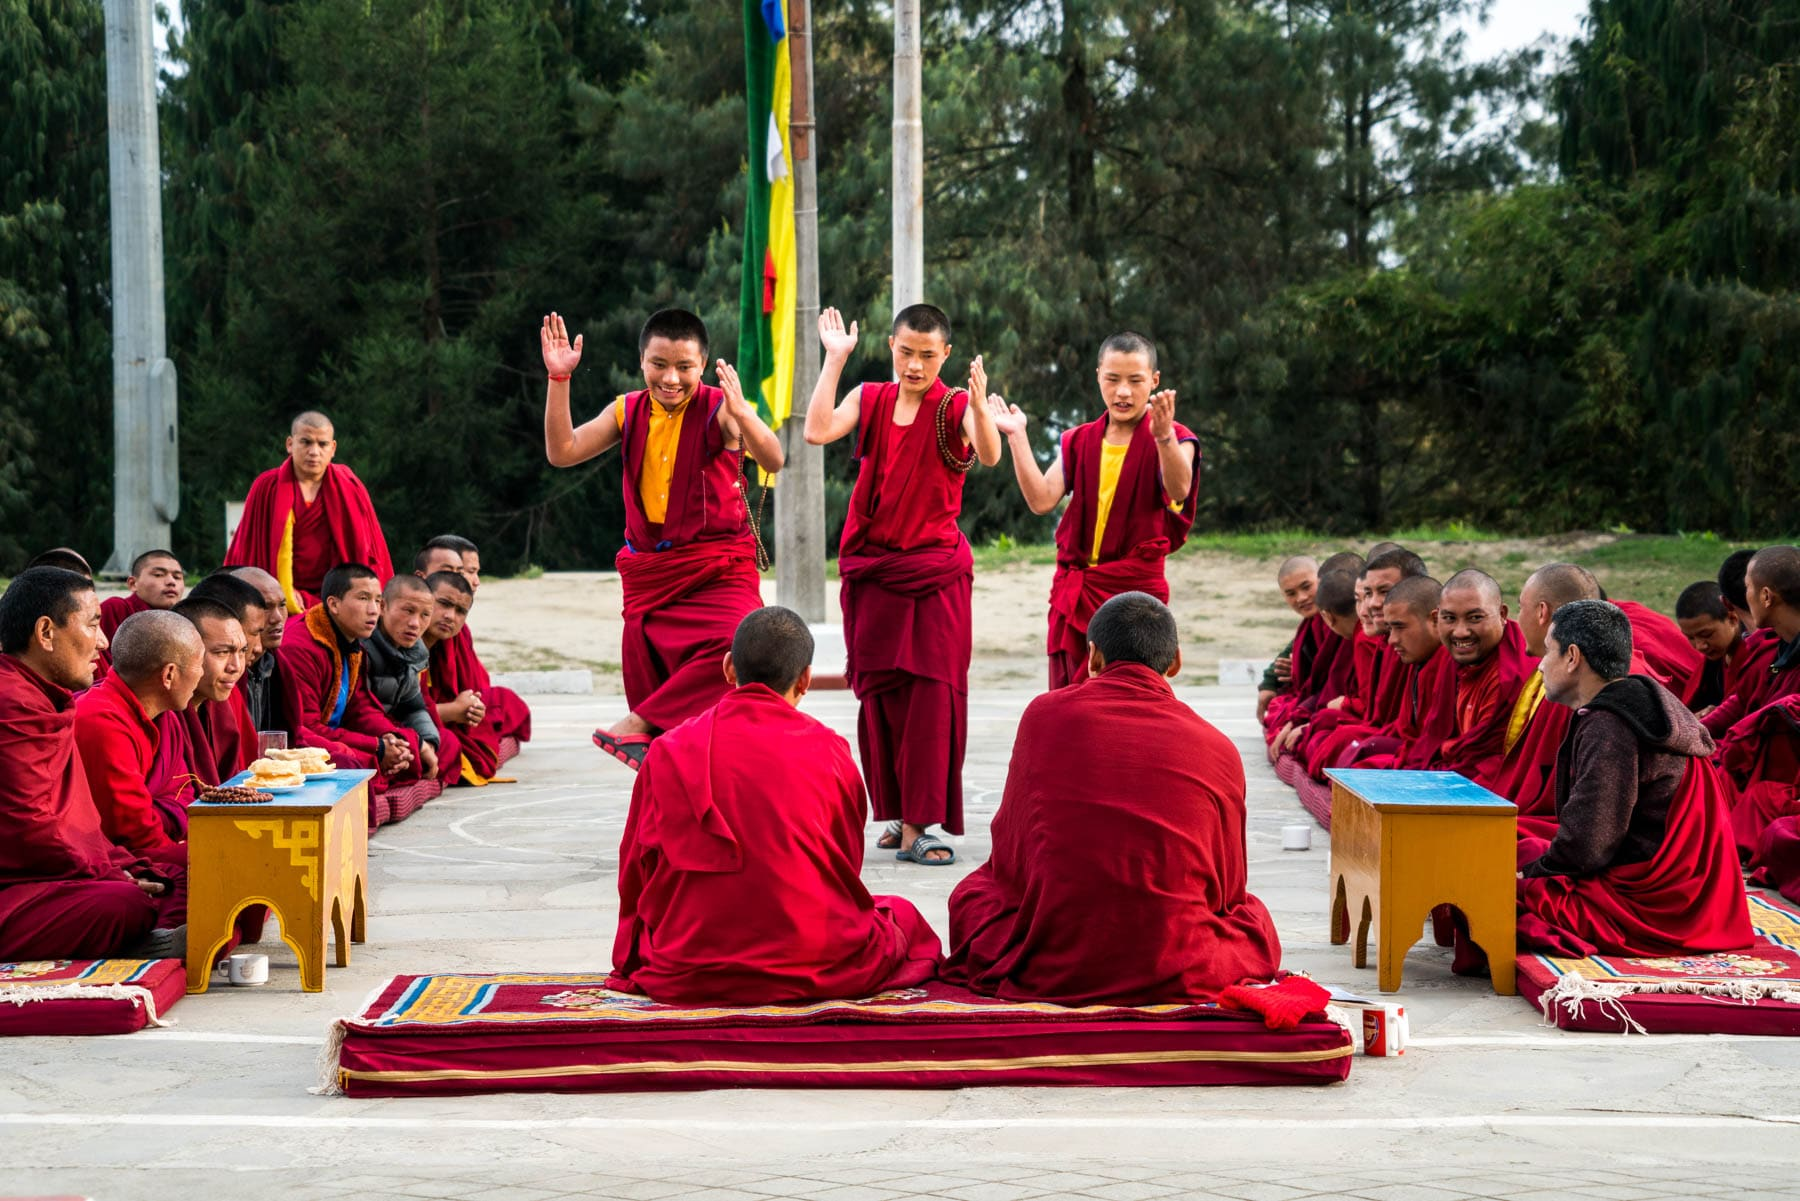 Backpacking in Arunachal Pradesh, India - Buddhist monks practicing Tibetan philosophical debate in Bomdila - Lost With Purpose